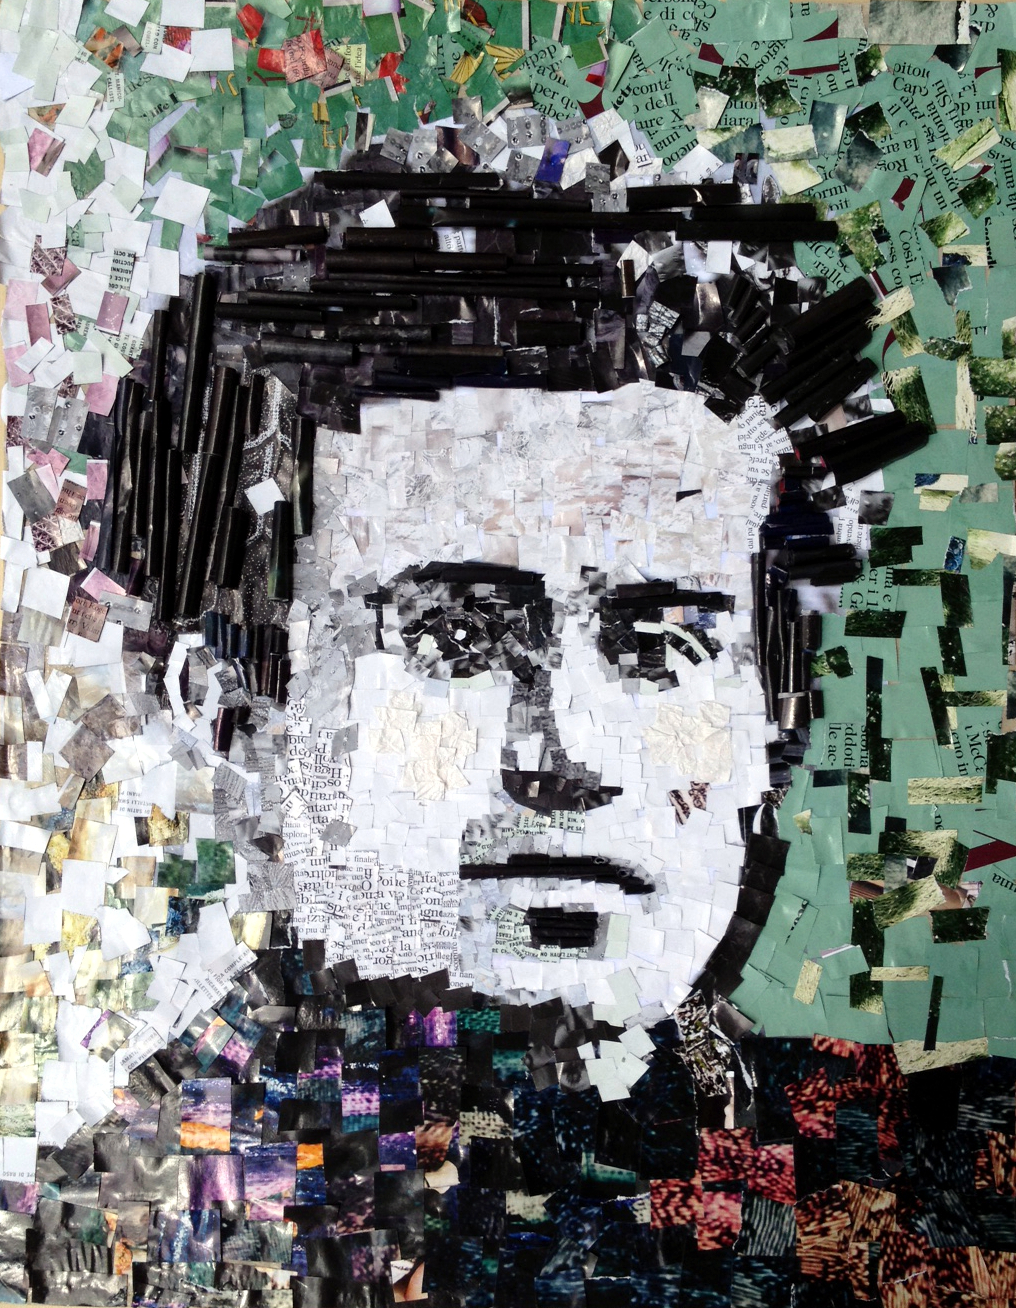 Casa Gramsci a Ghilarza-collages